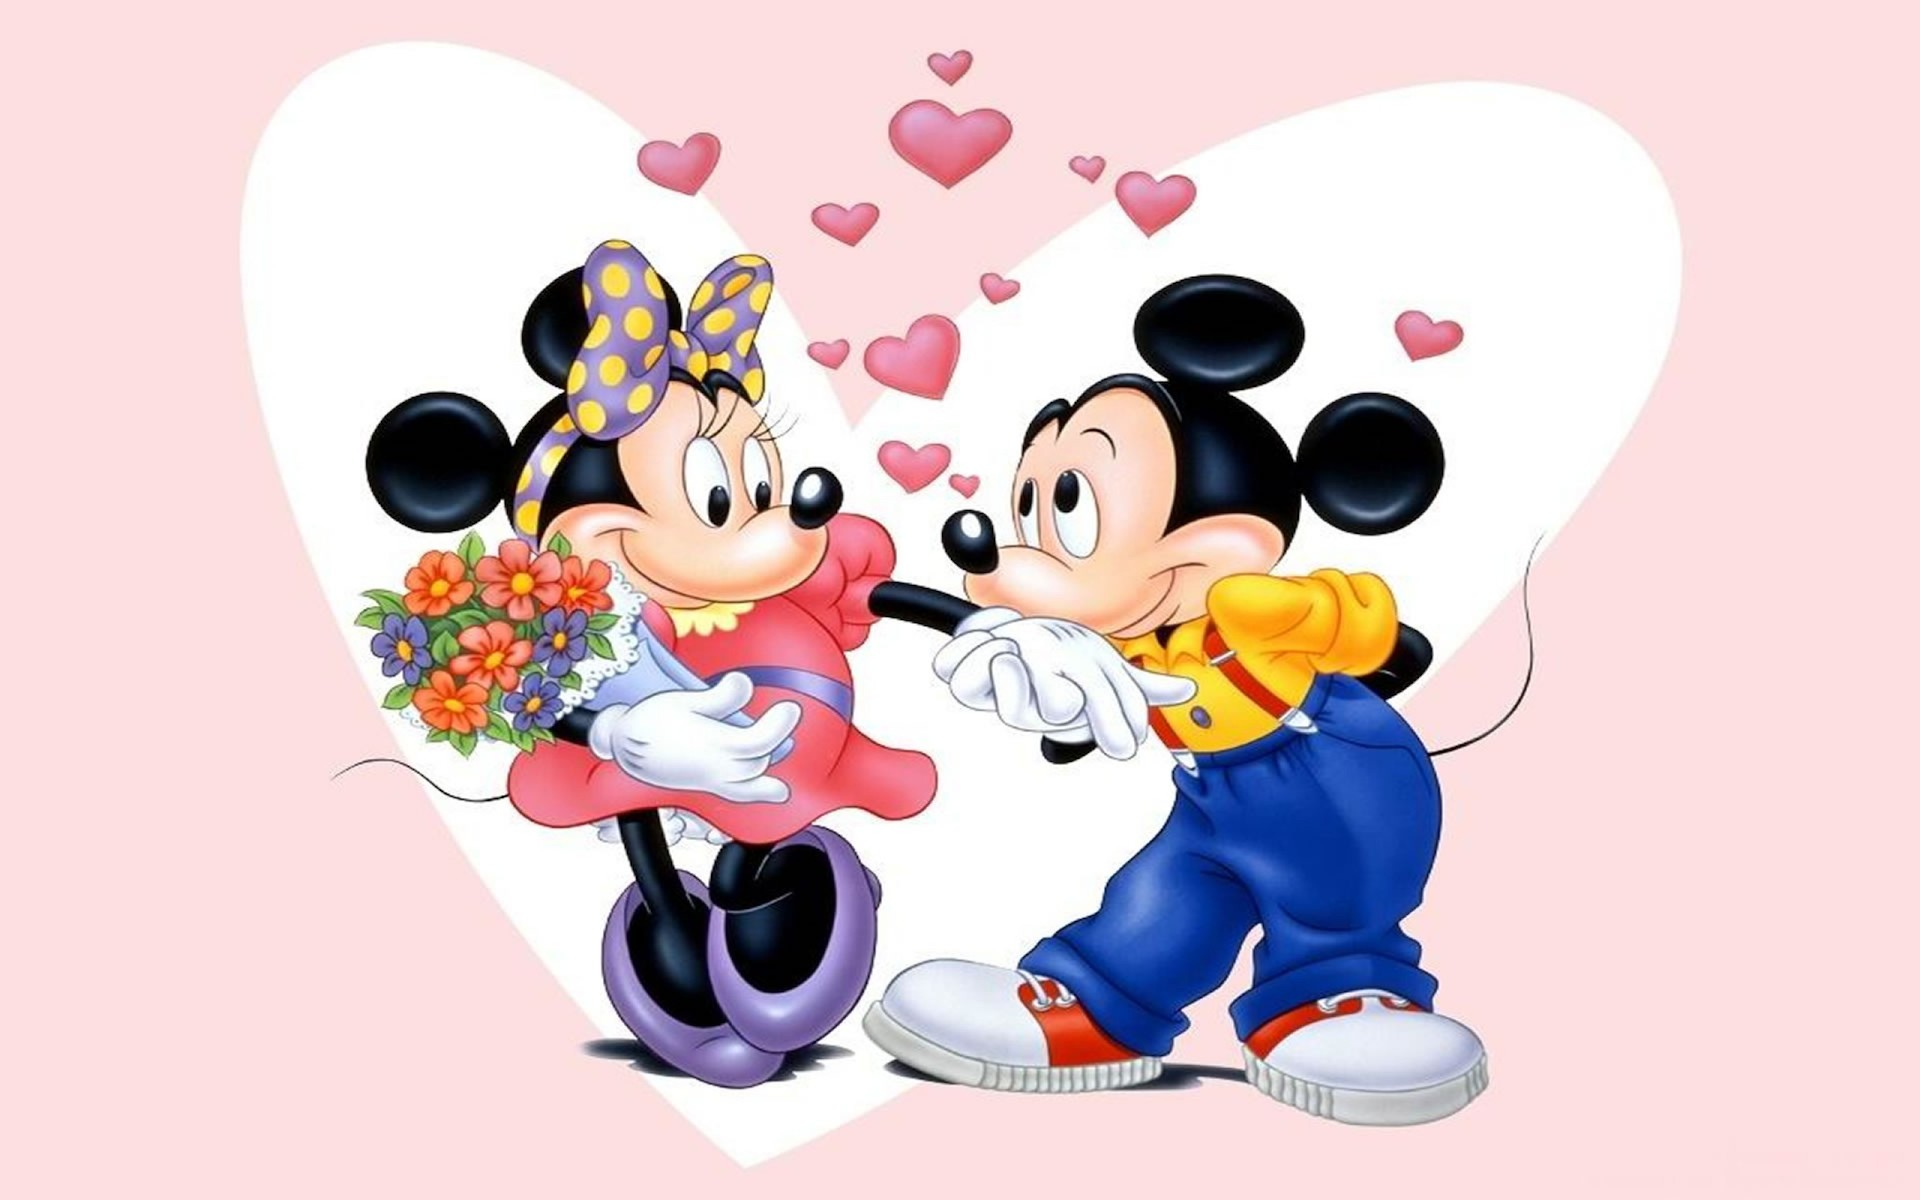 Free Mickey Mouse And Minnie Mouse Love Download Free Clip Art Free Clip Art on Clipart Library